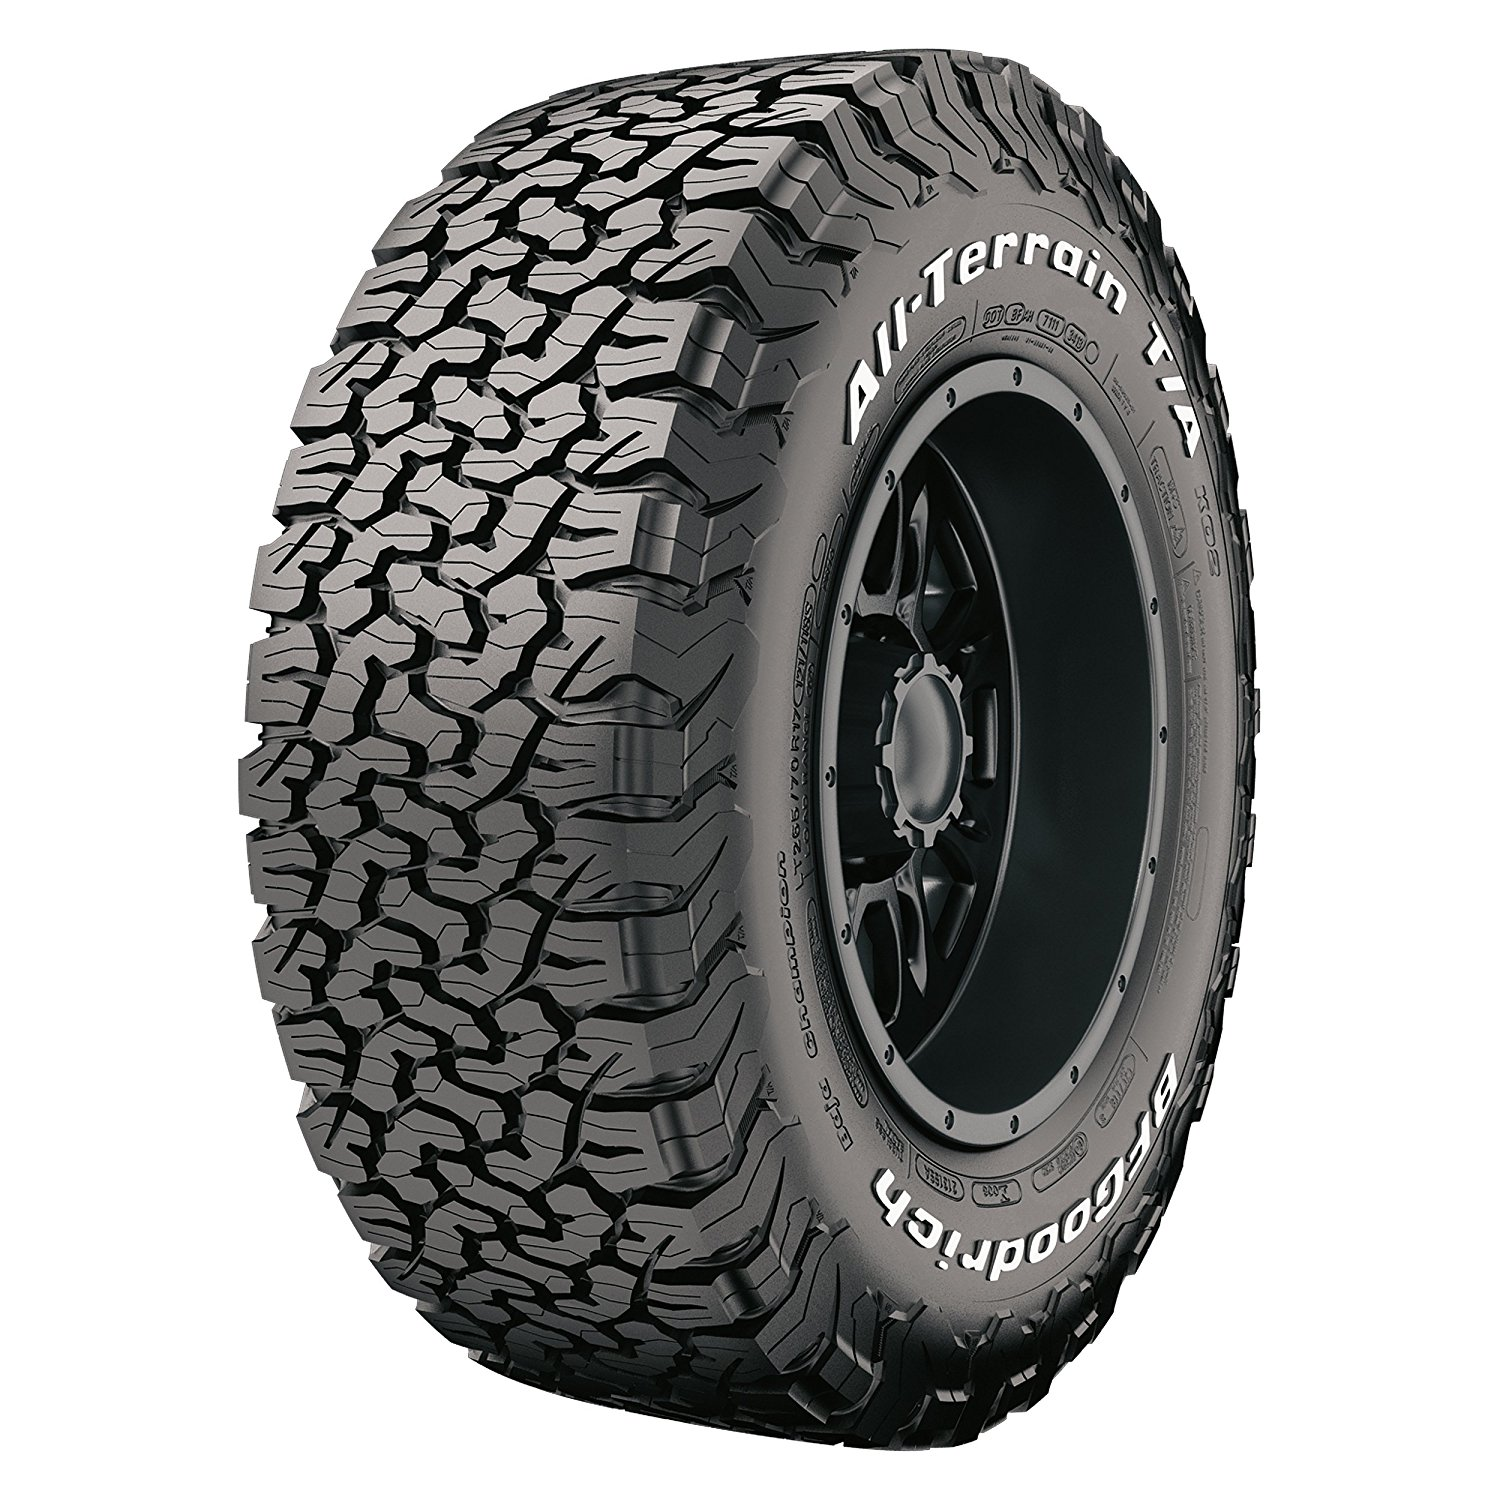 Where to get tires mounted near me